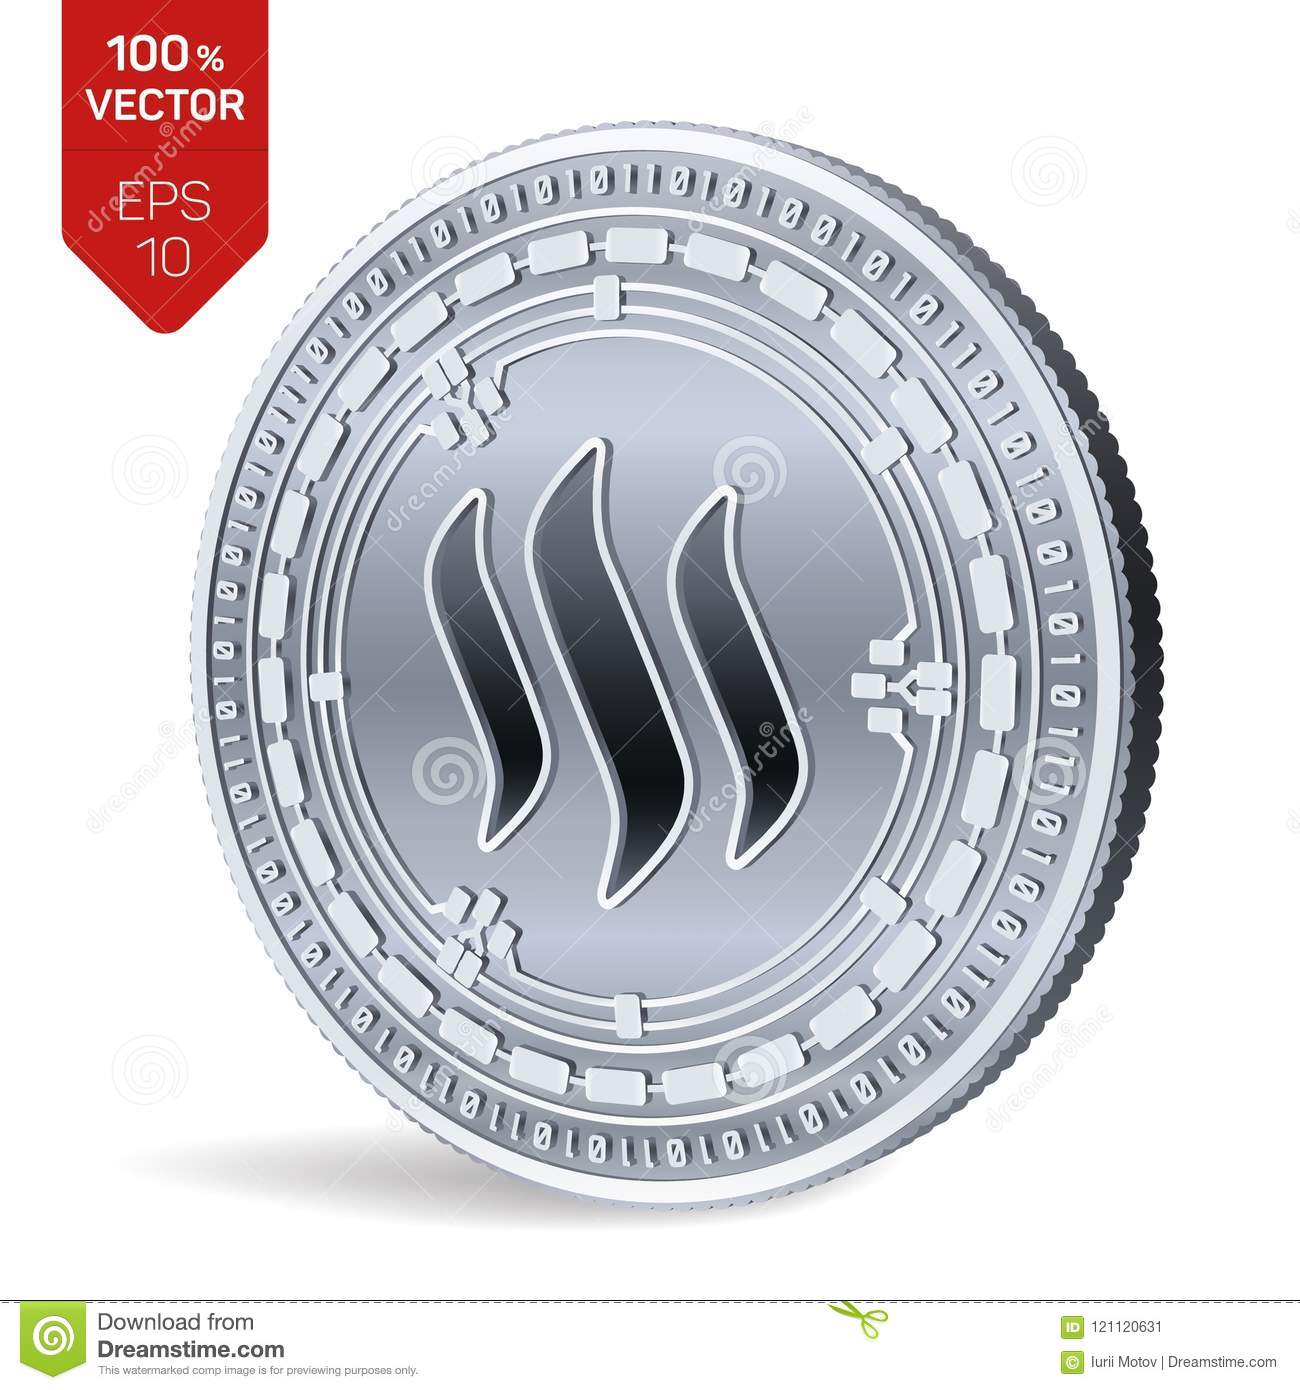 where can i buy cryptocurrency steem